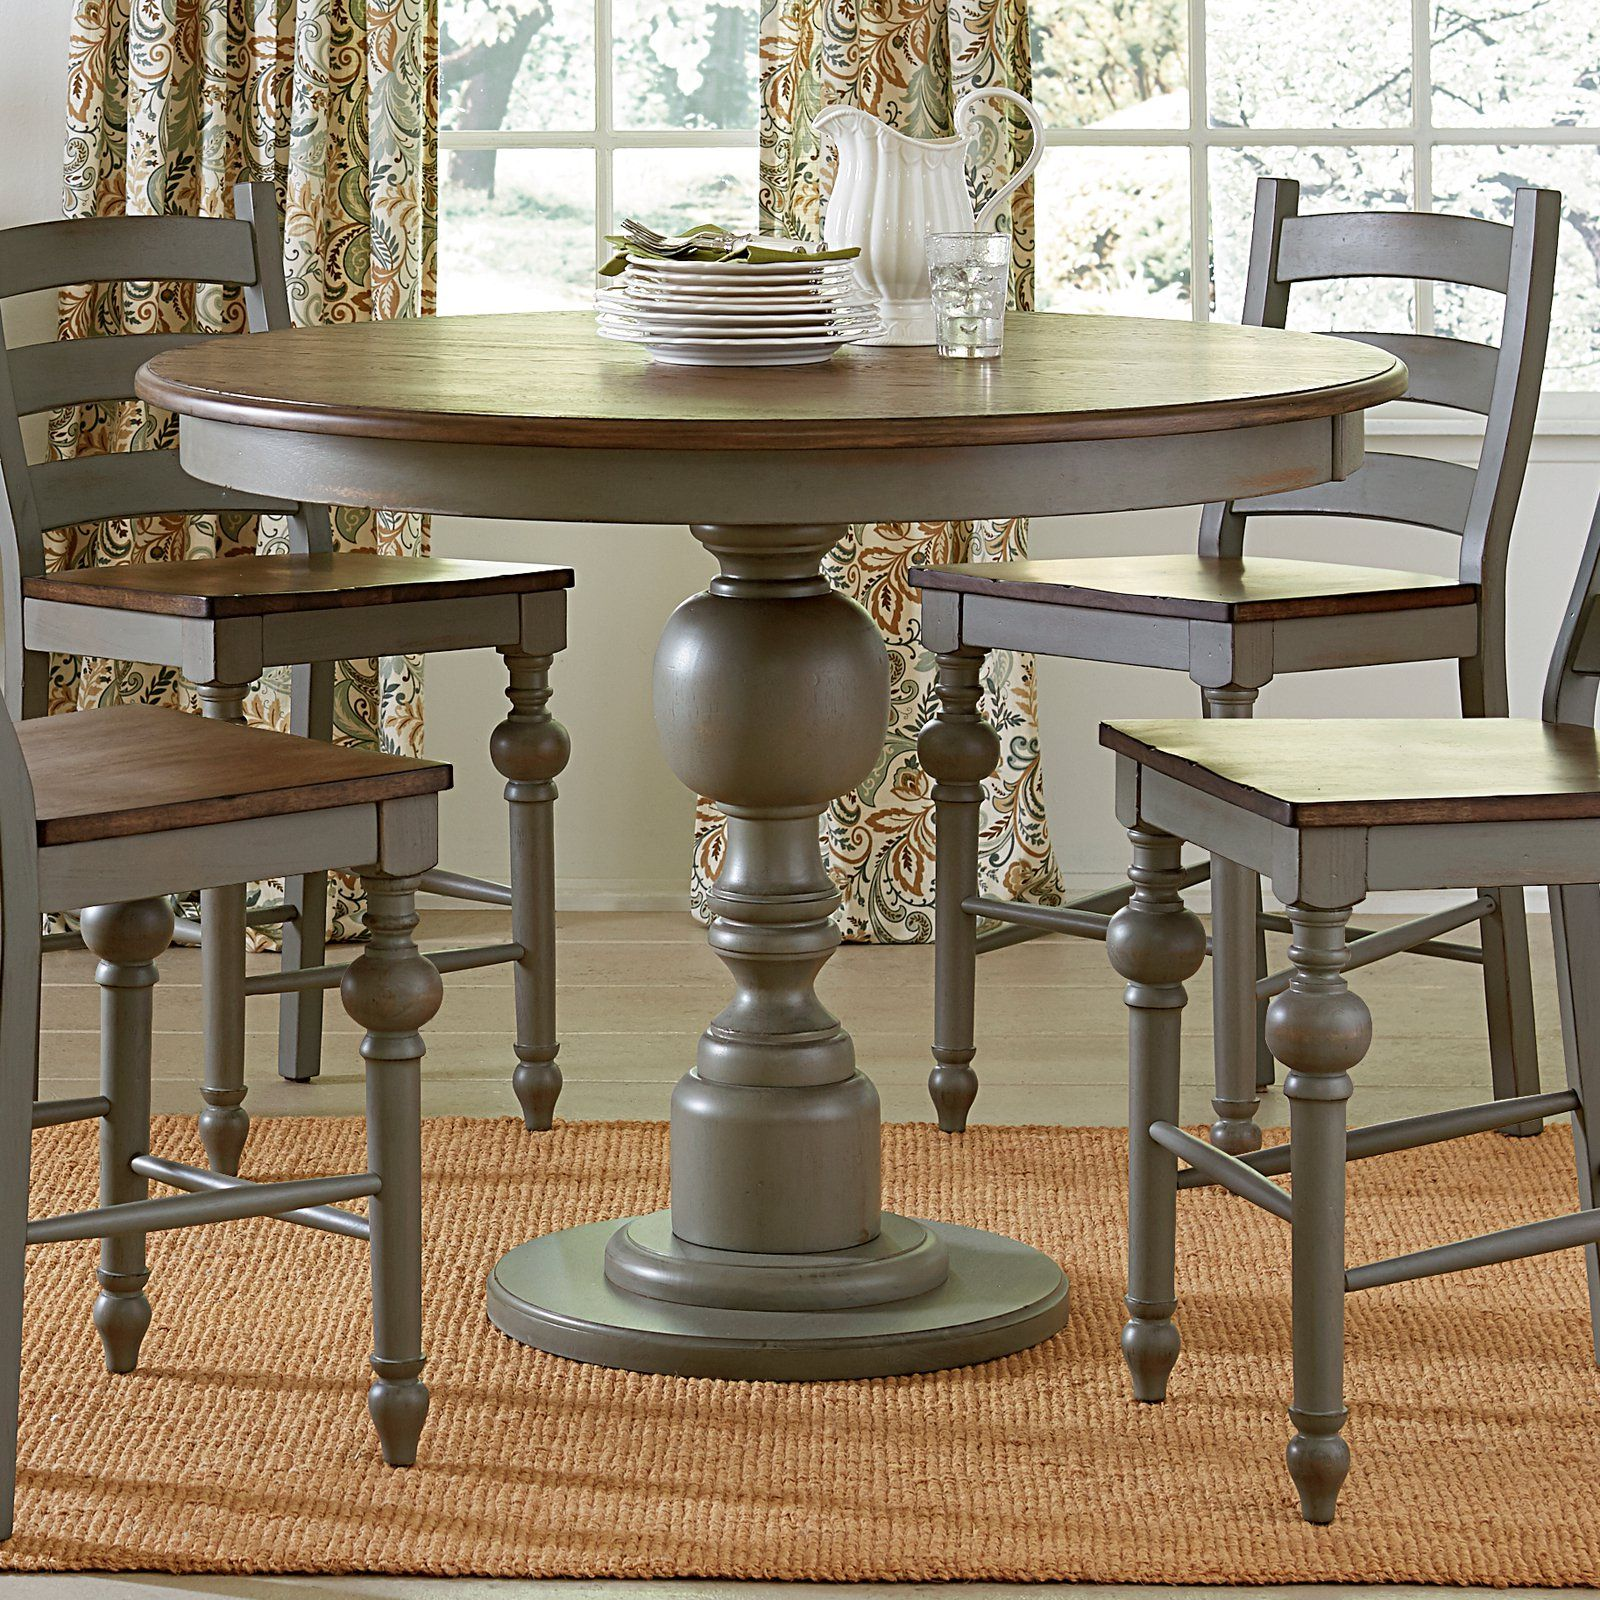 The Progressive Colannades Collection Round Counter Height Table Boasts All The Charm Of A Round Counter Height Table Painted Kitchen Tables Round Dining Table